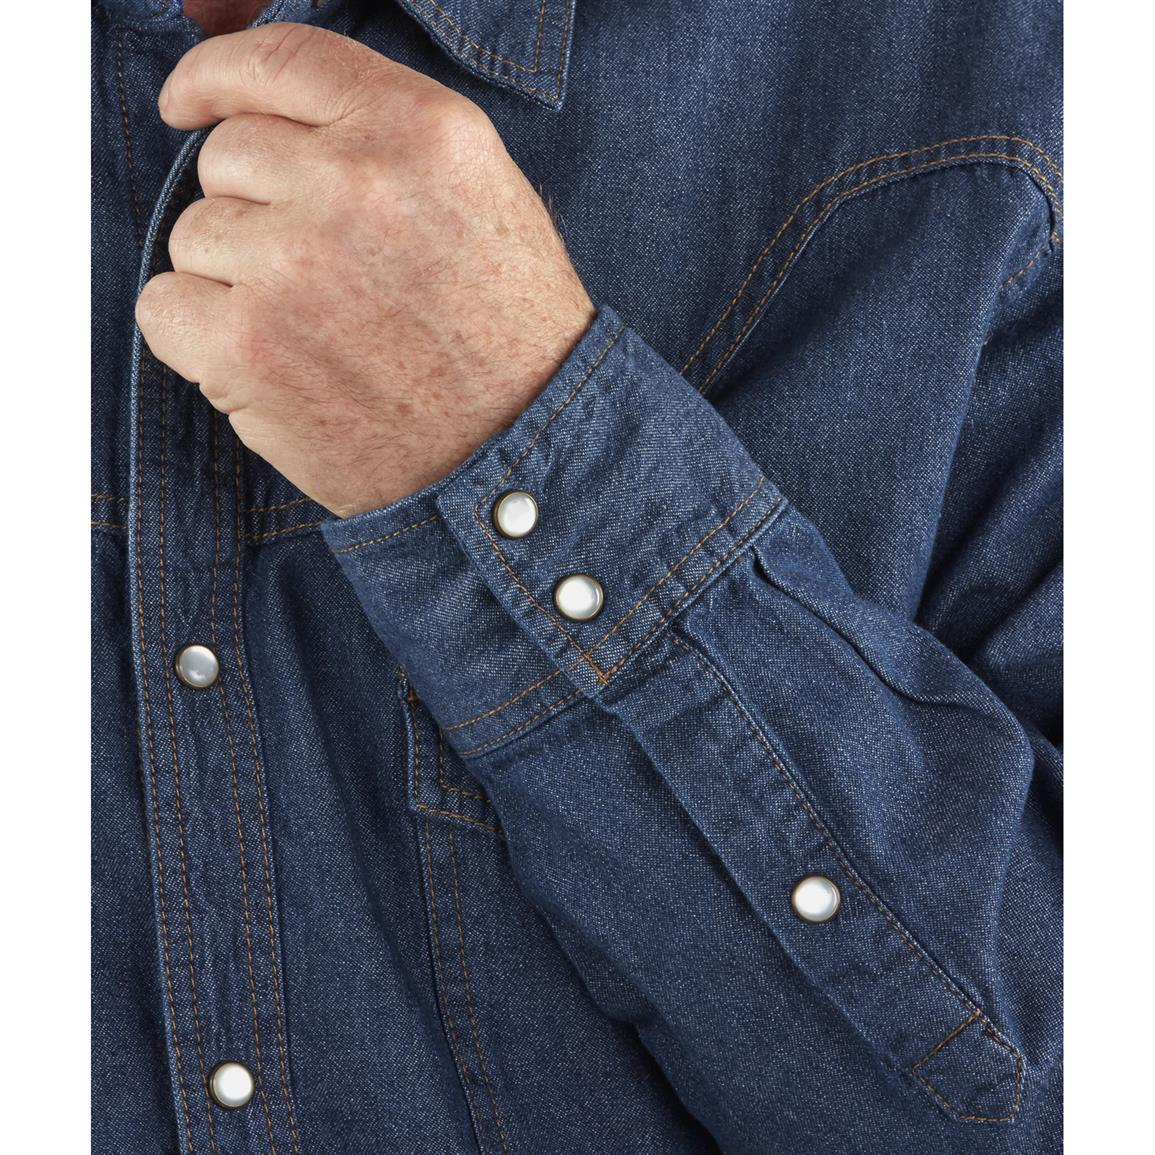 Pearl snap-button placket for classic Western style